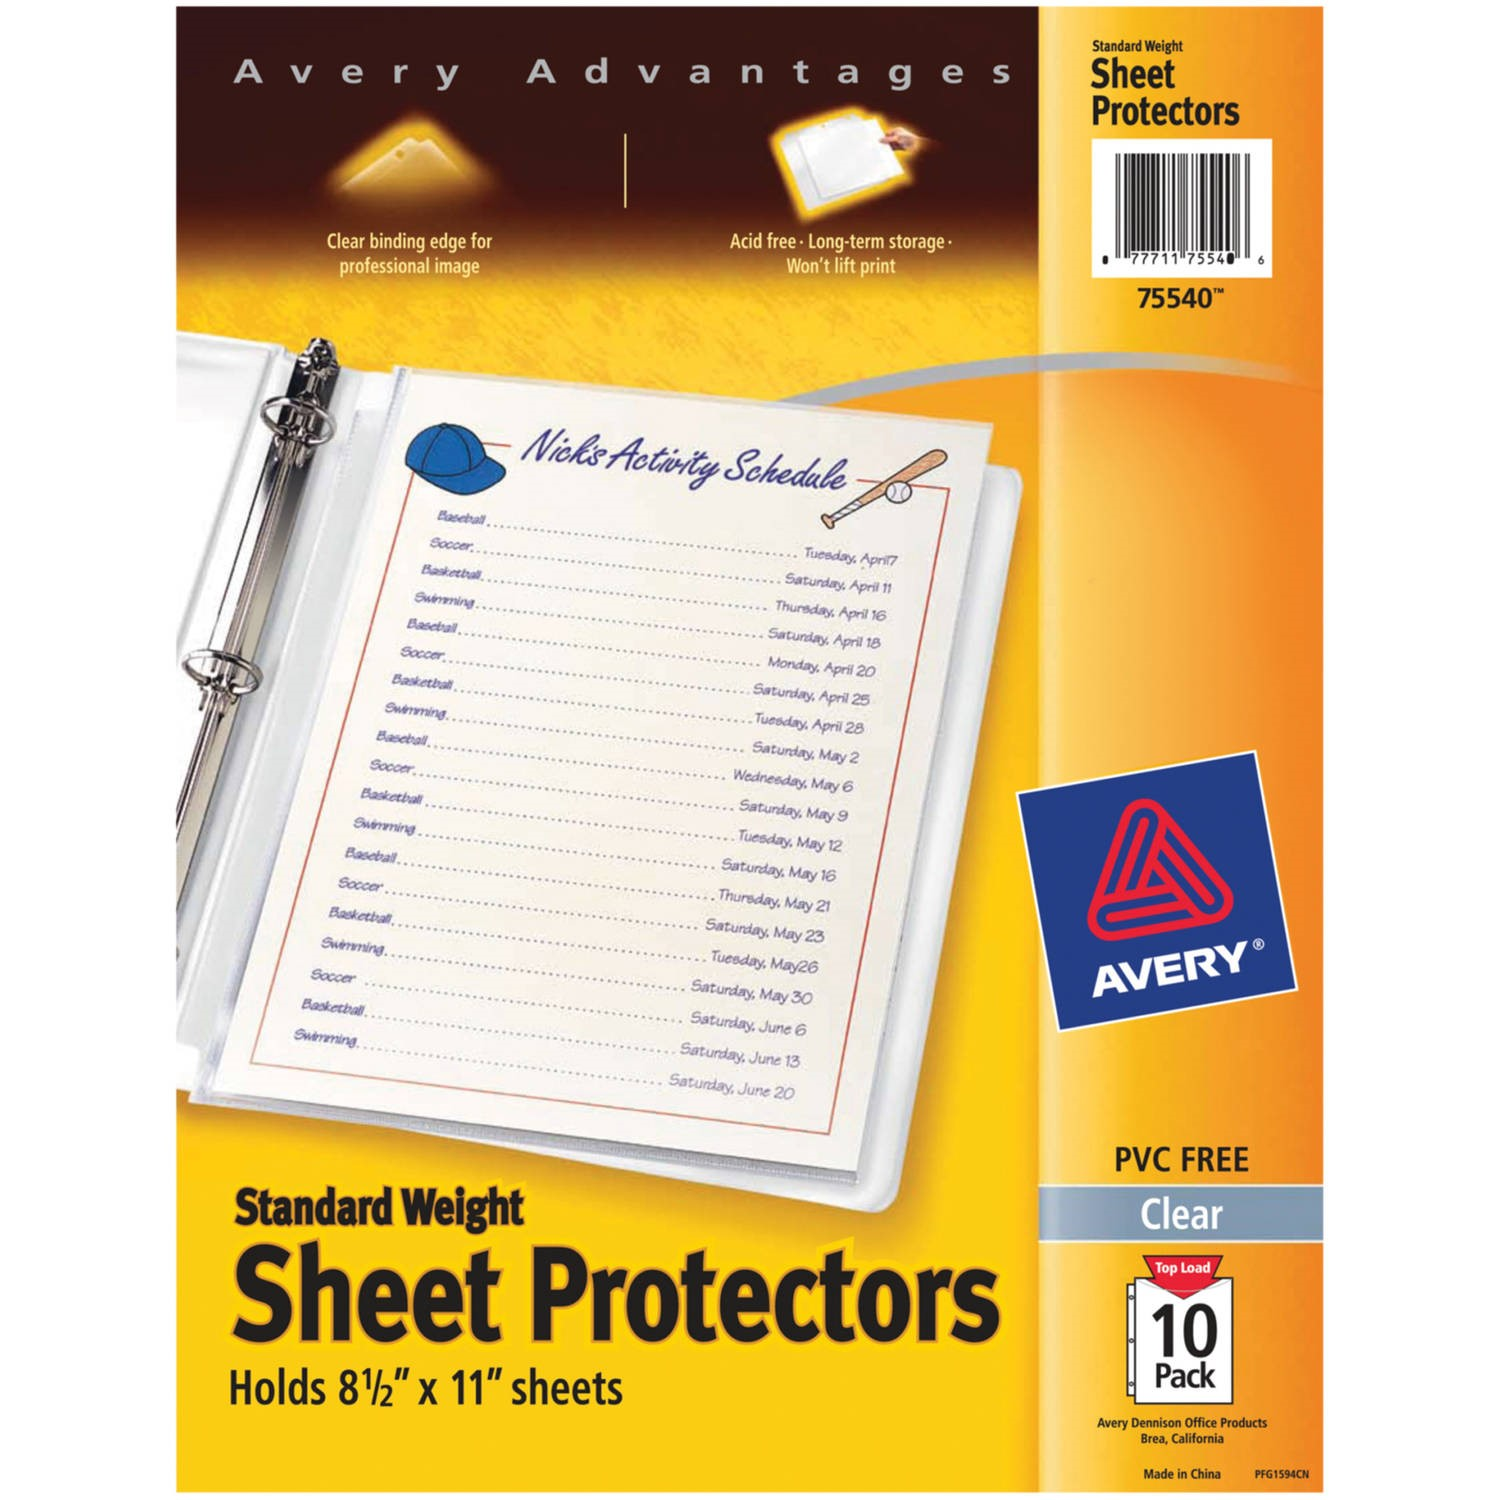 (2 Pack) Avery Standard Weight Sheet Protectors, Pack of 10 (75540)